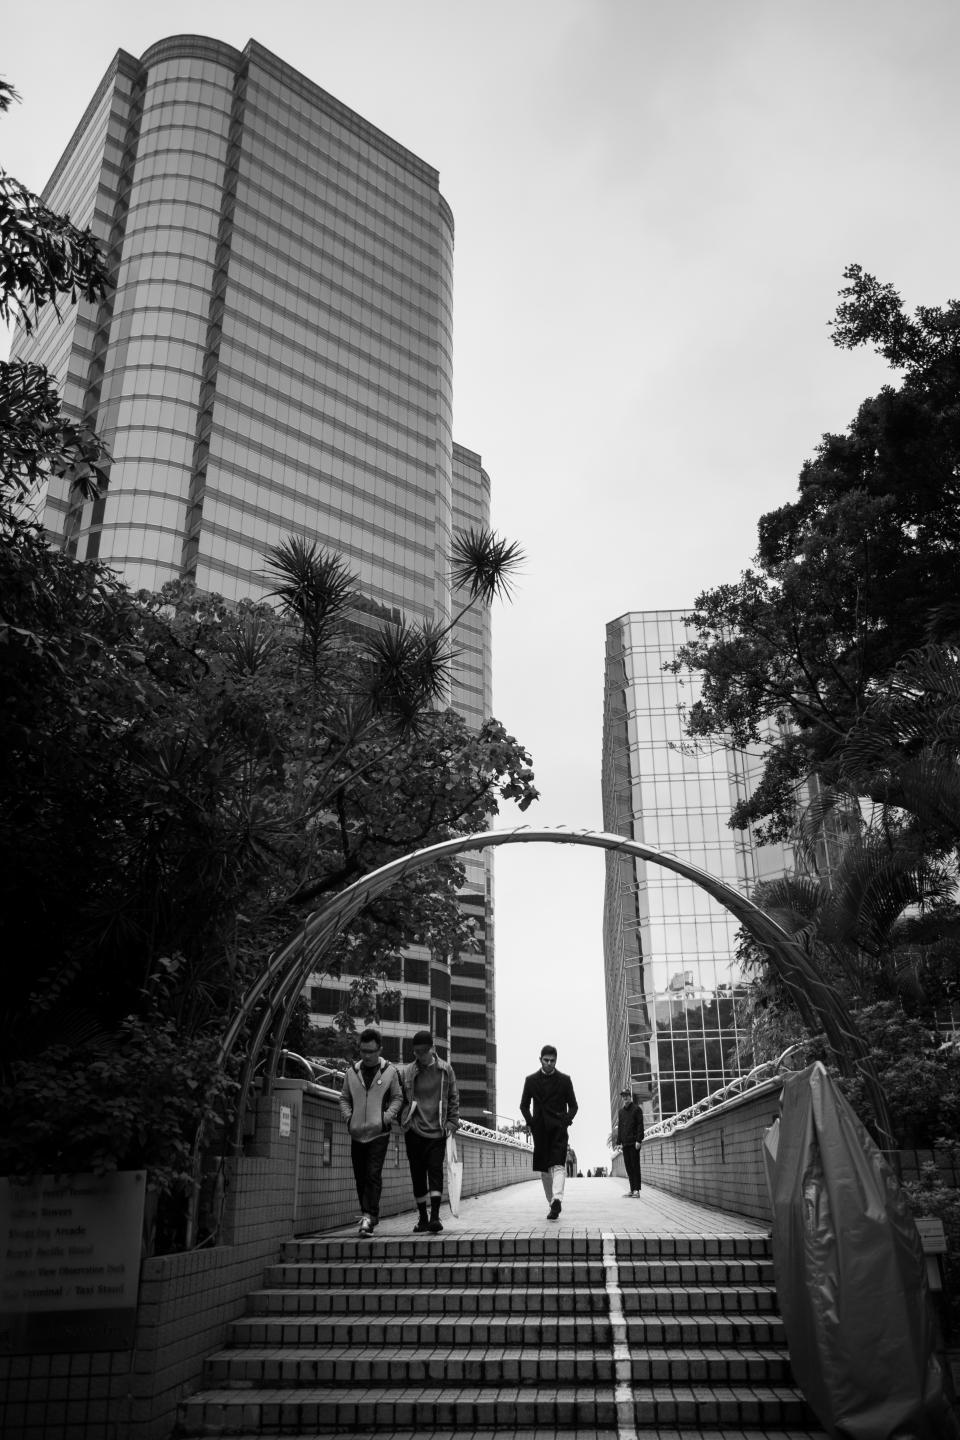 architecture building infrastructure black and white sky skyscraper tower landmark city urban people travel outdoor arch stairs